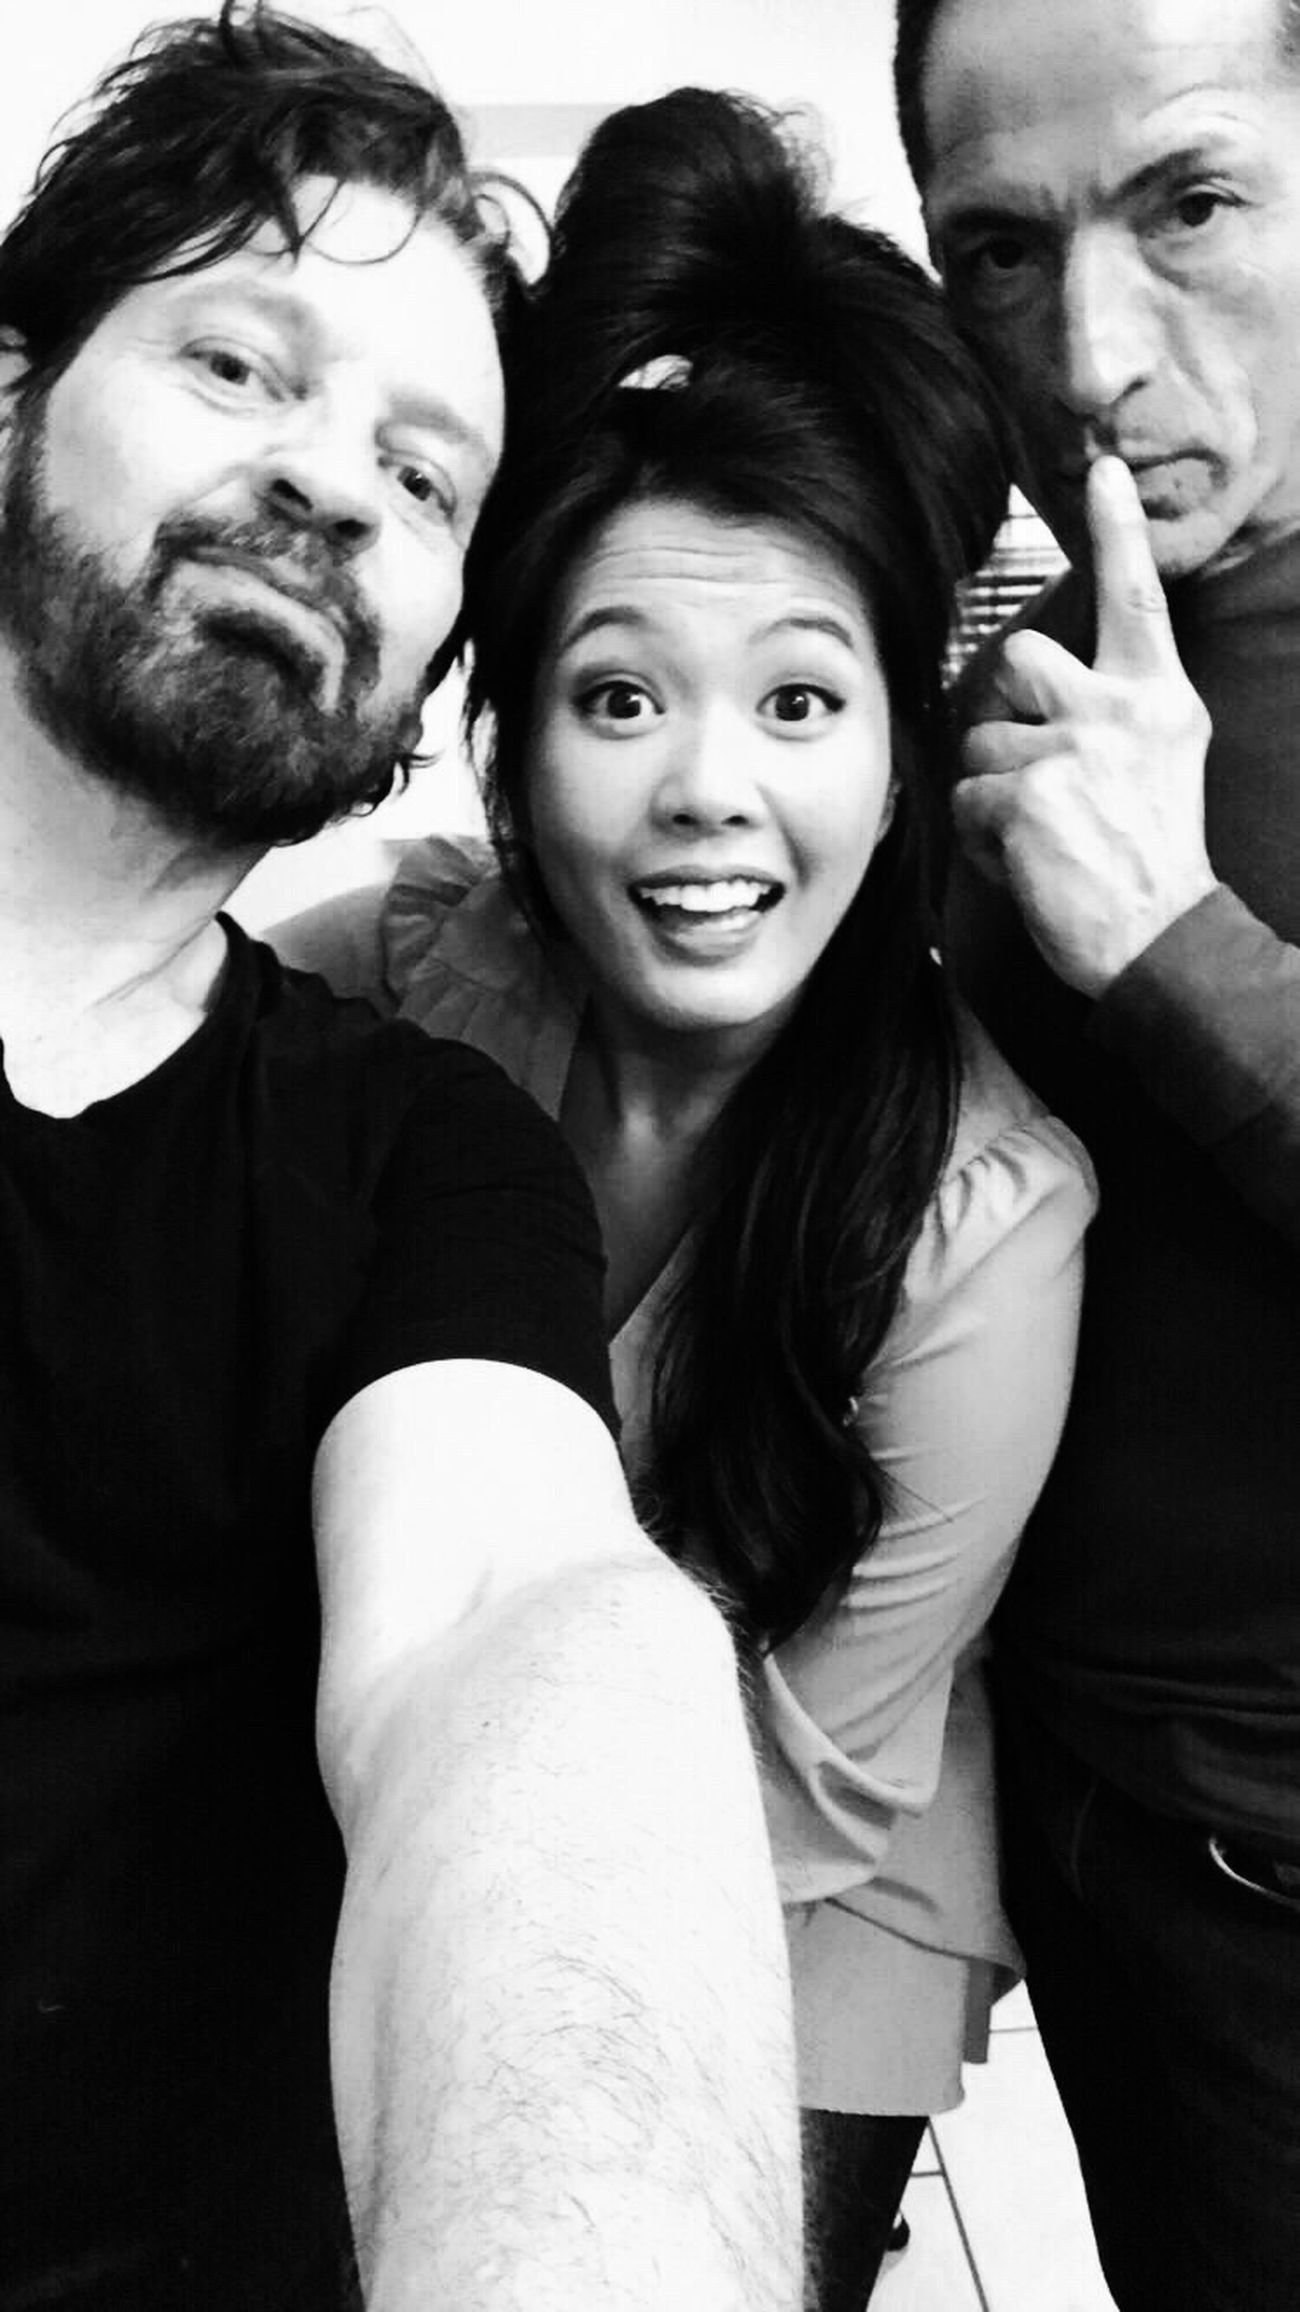 Rare to be in front of the camera, but I quite love this pic taken with Randa's iPhone after our proper shoot. L-R me, Randa, Jorge. So much fun we all had together! ThatsMe